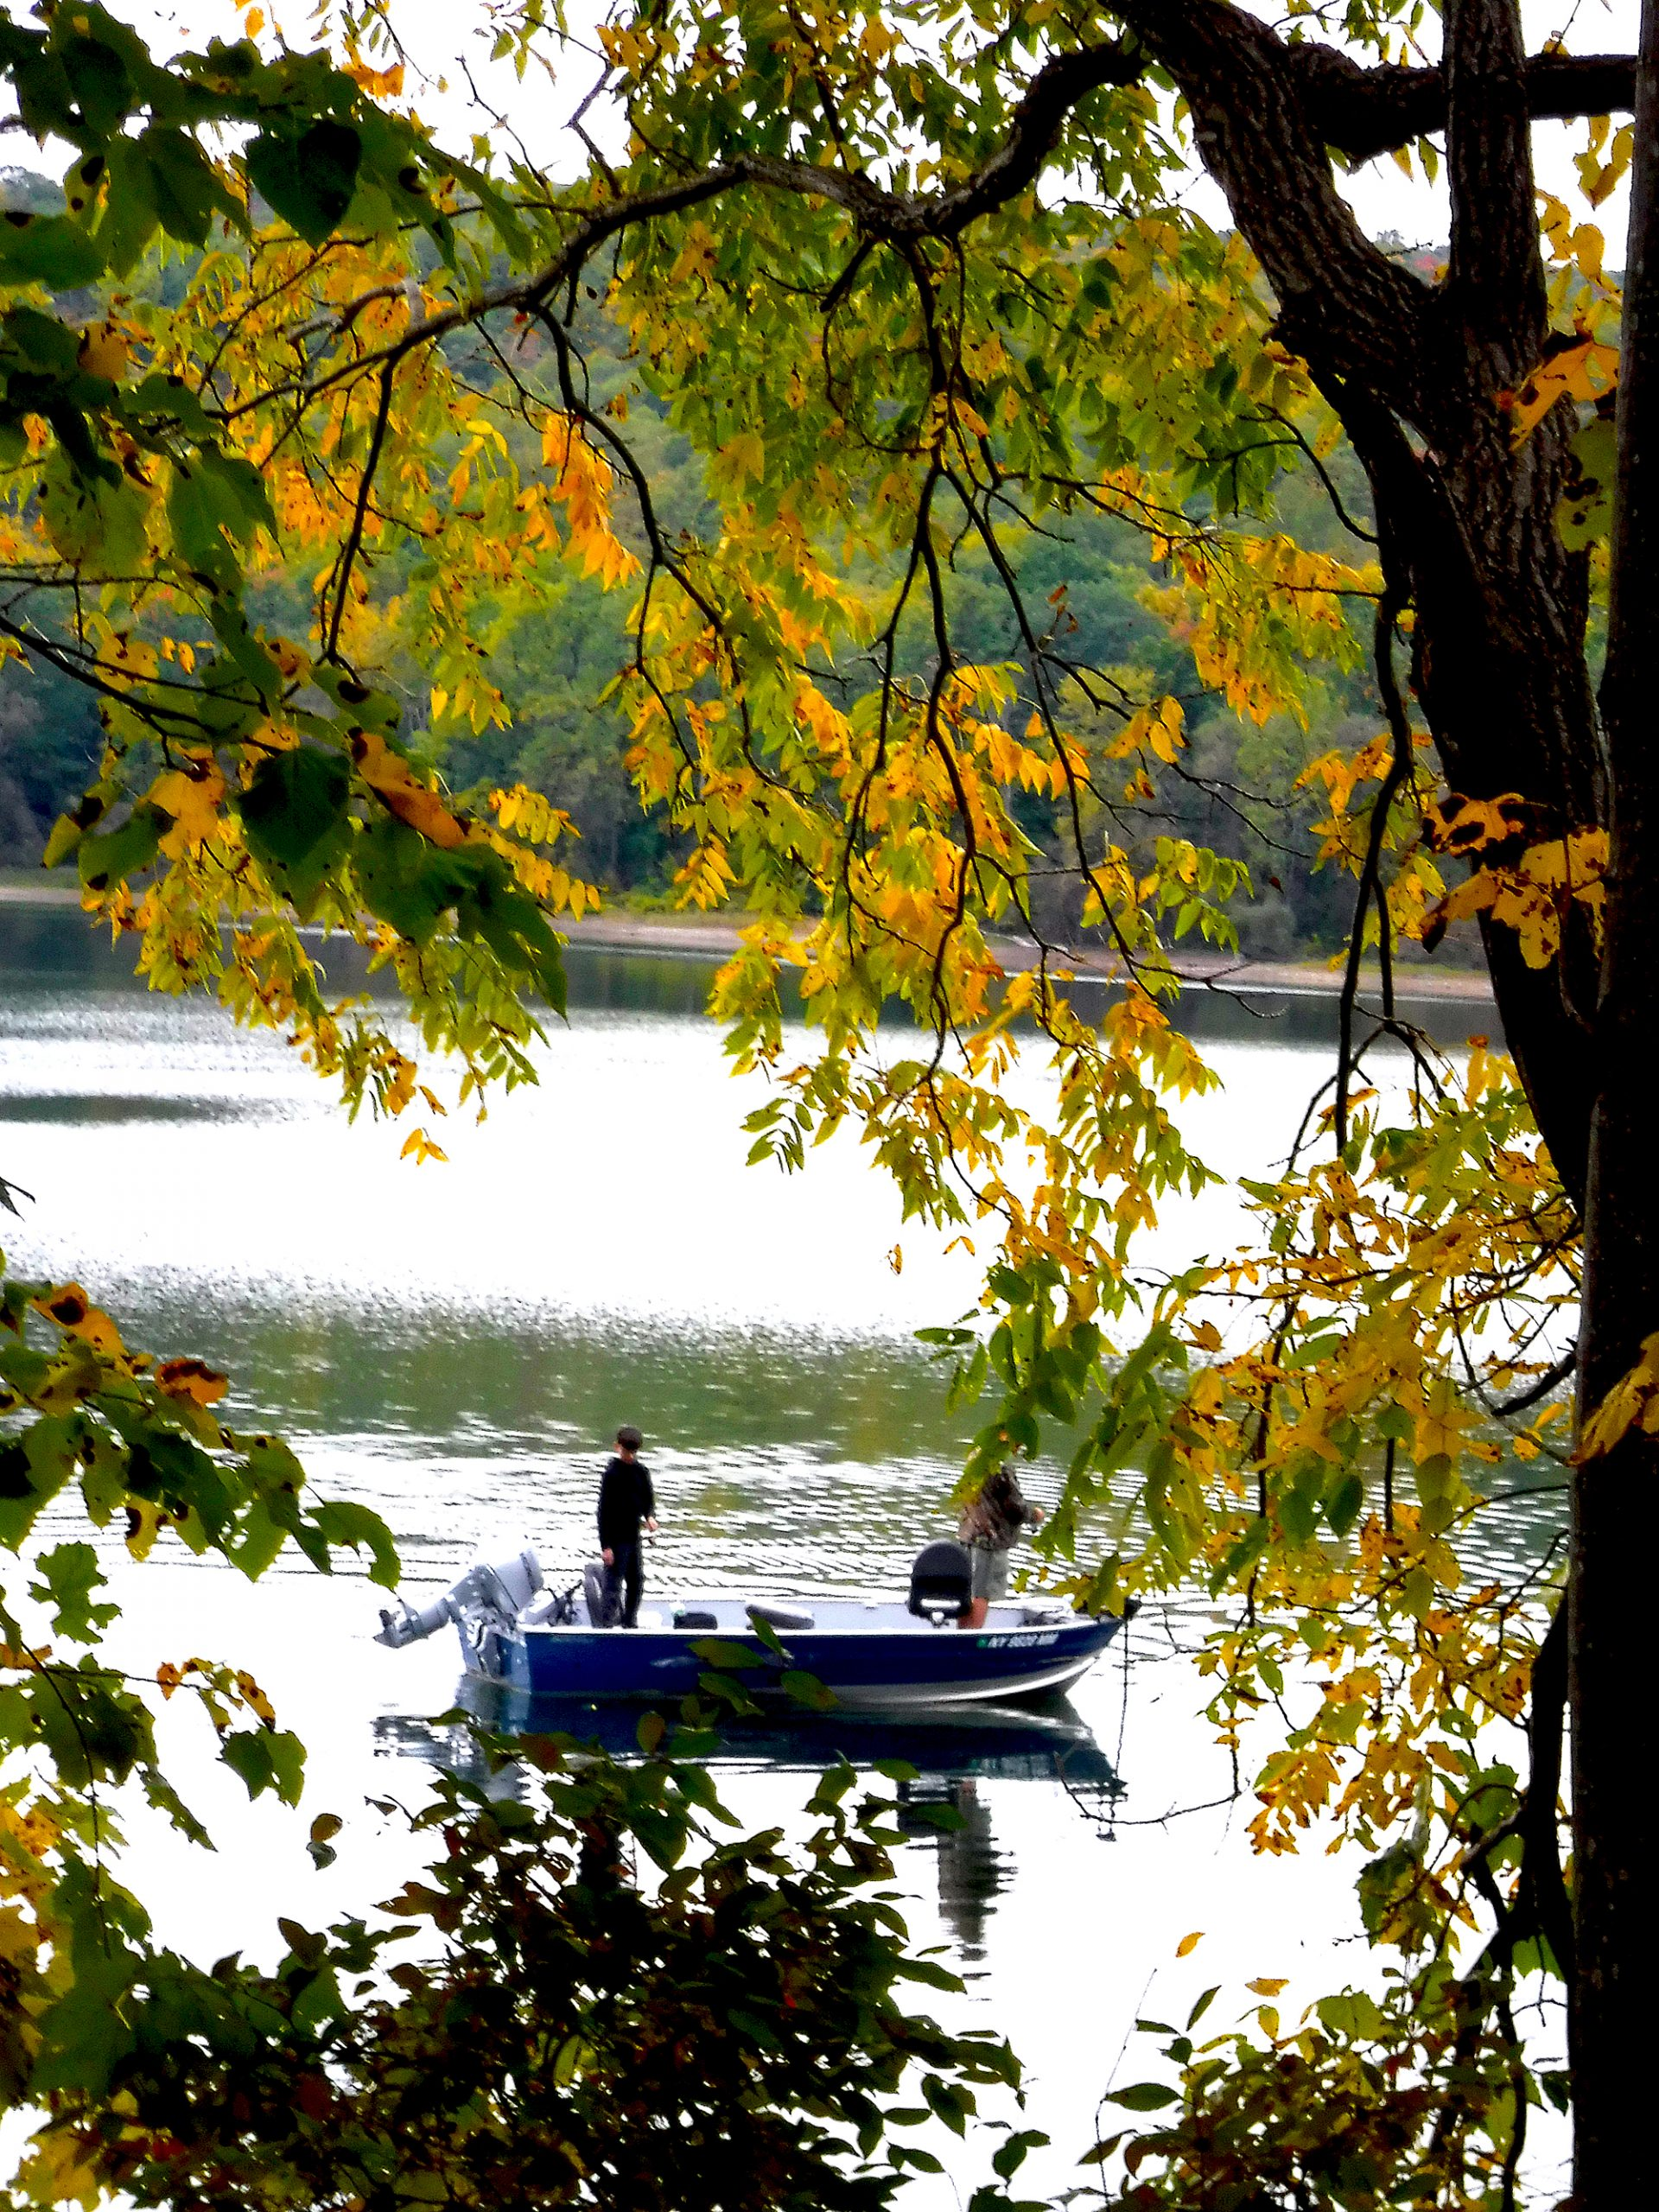 fishing on Hemlock Lake, one of the Finger Lakes